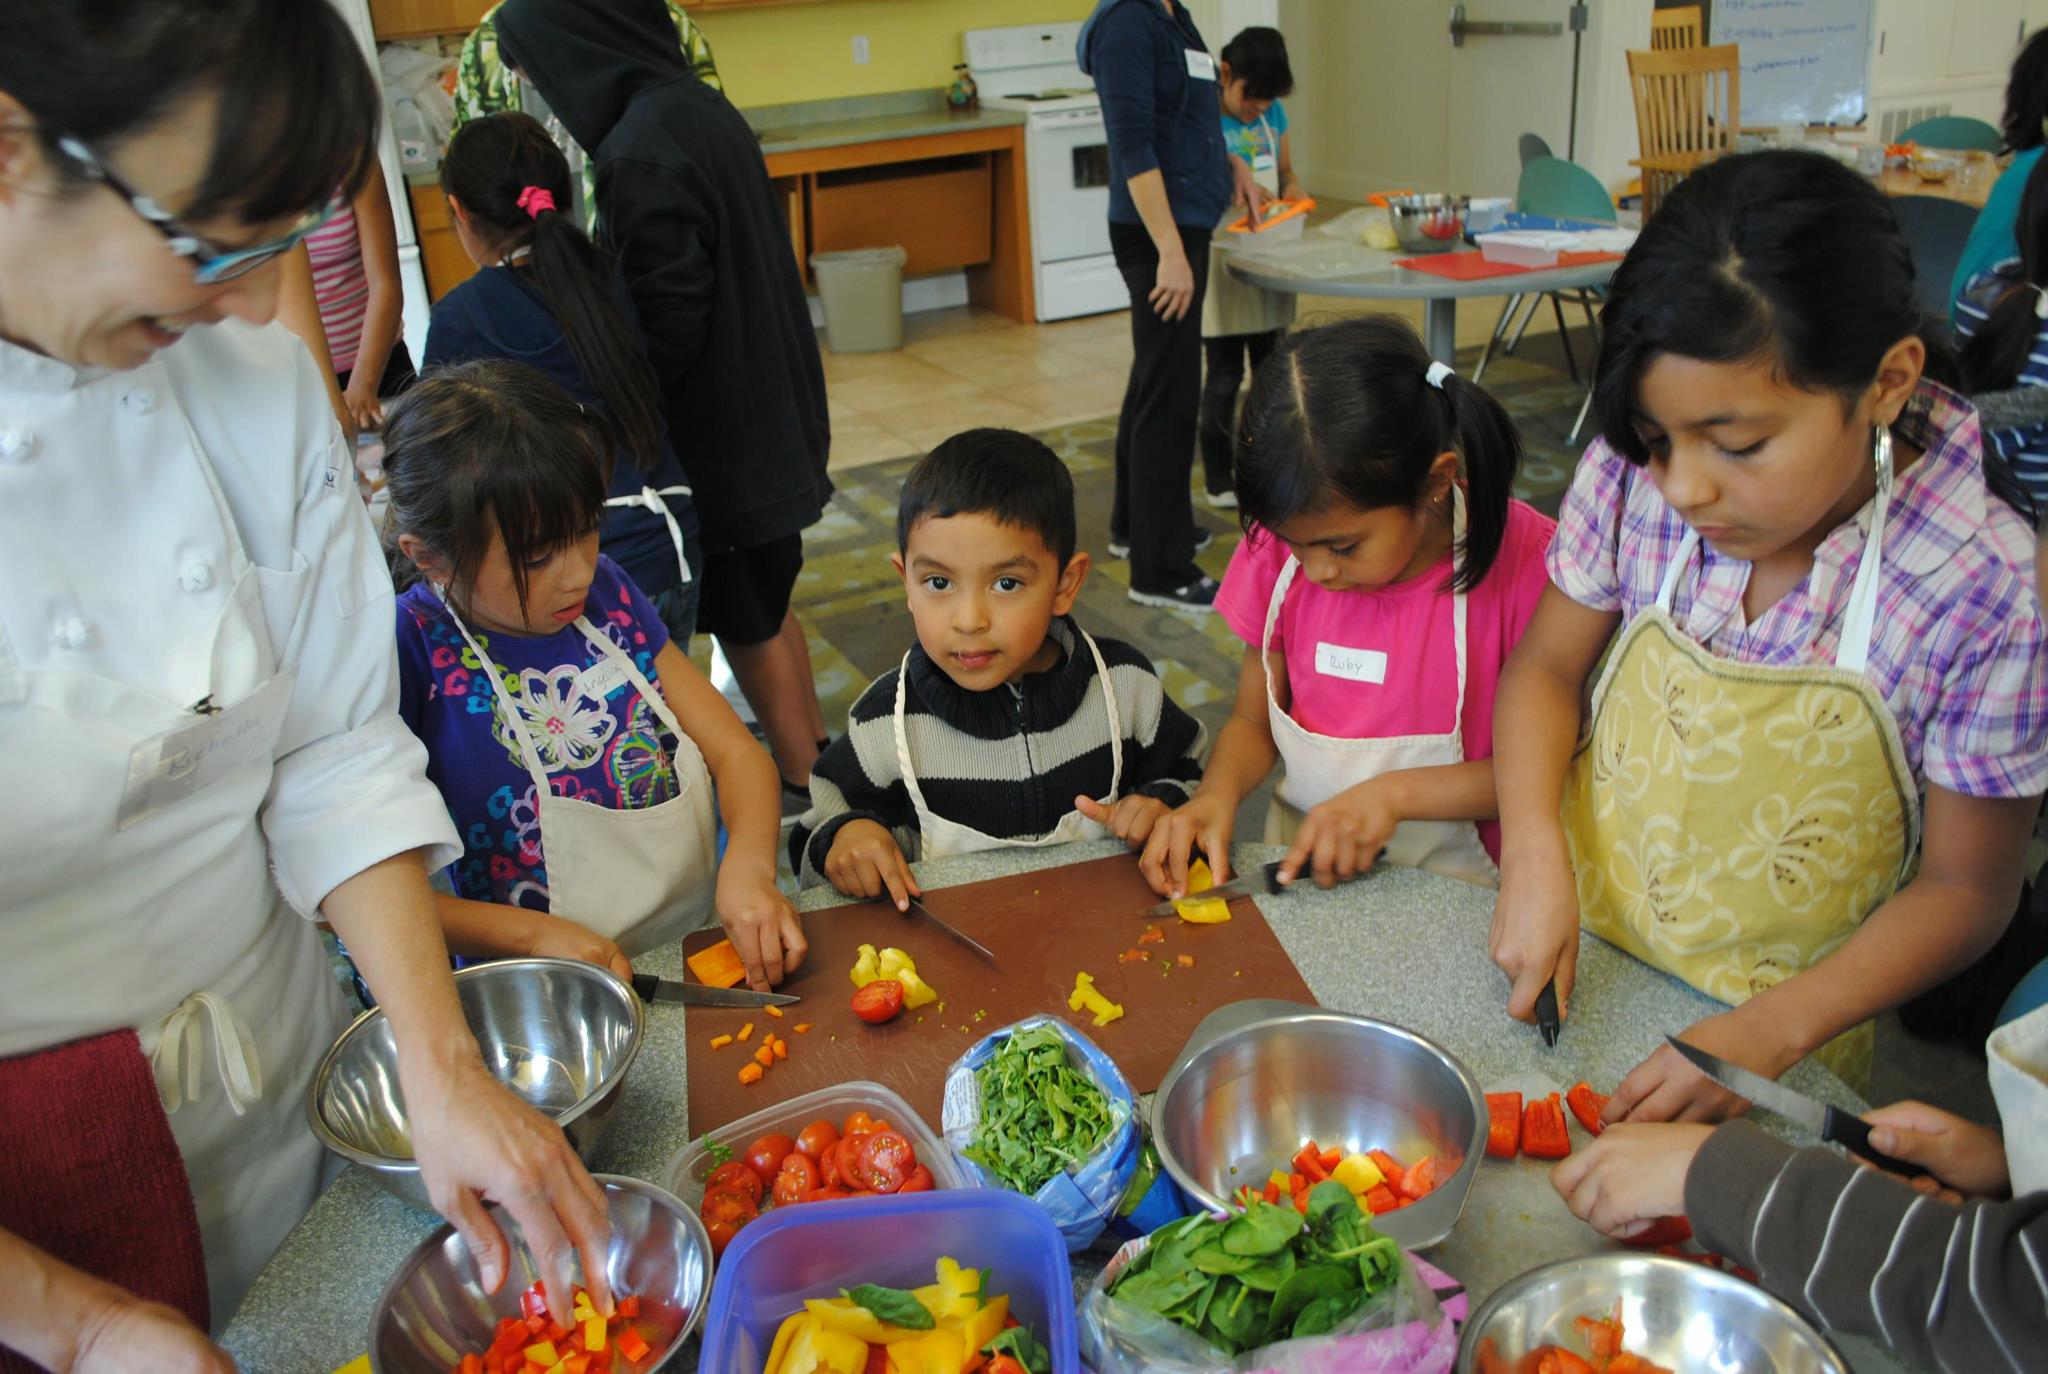 4 kids learning about nutrition in a classroom with a teacher